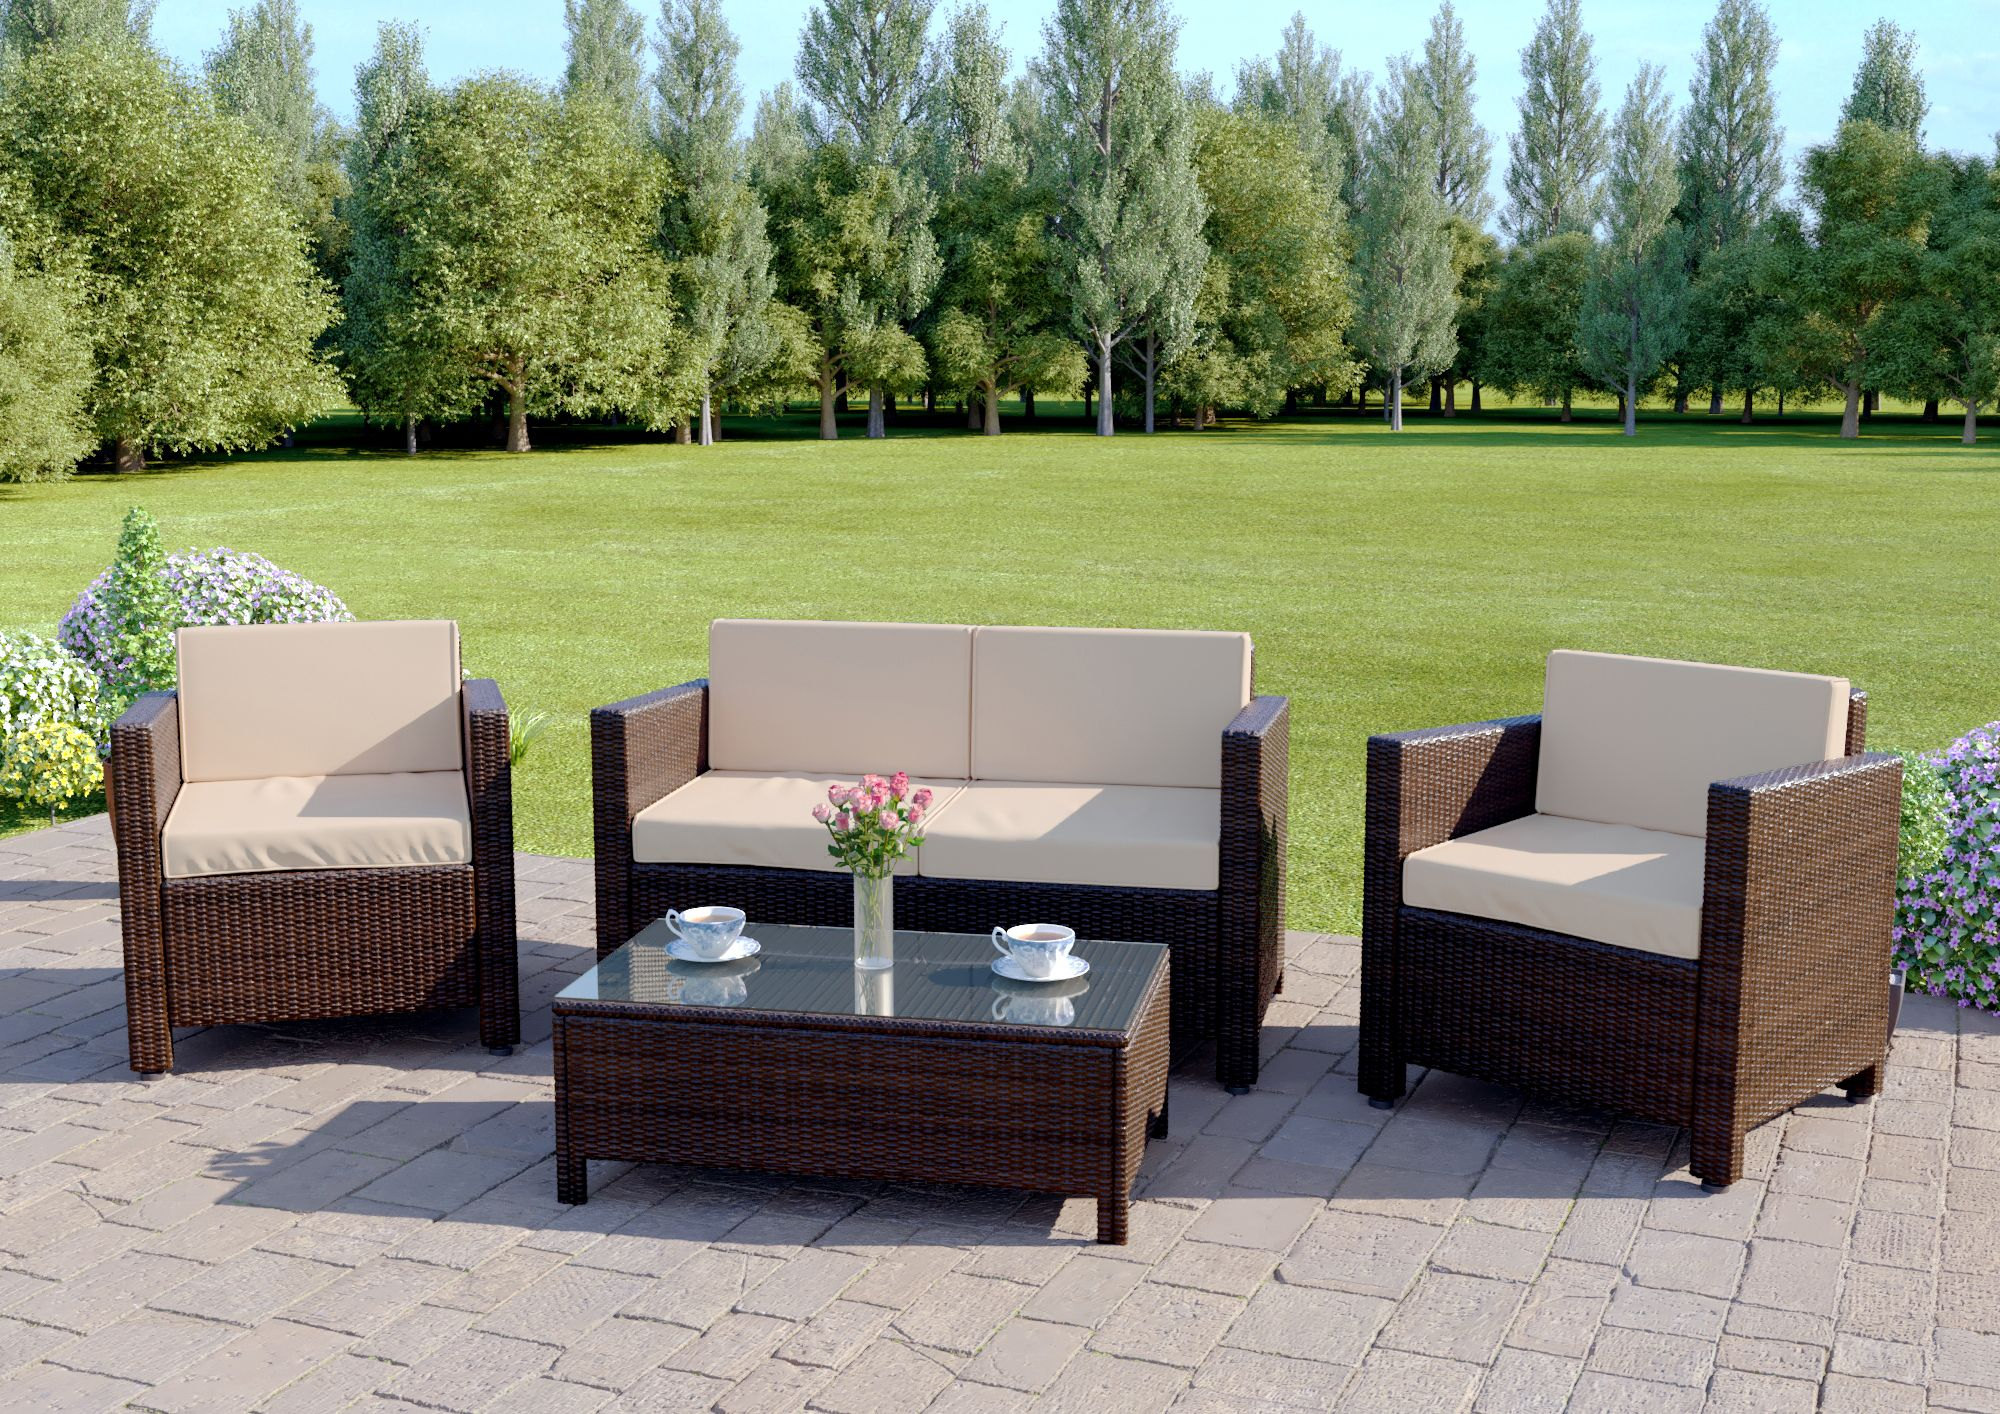 4 Piece Roma Rattan Sofa Set In Brown Includes Free Protective